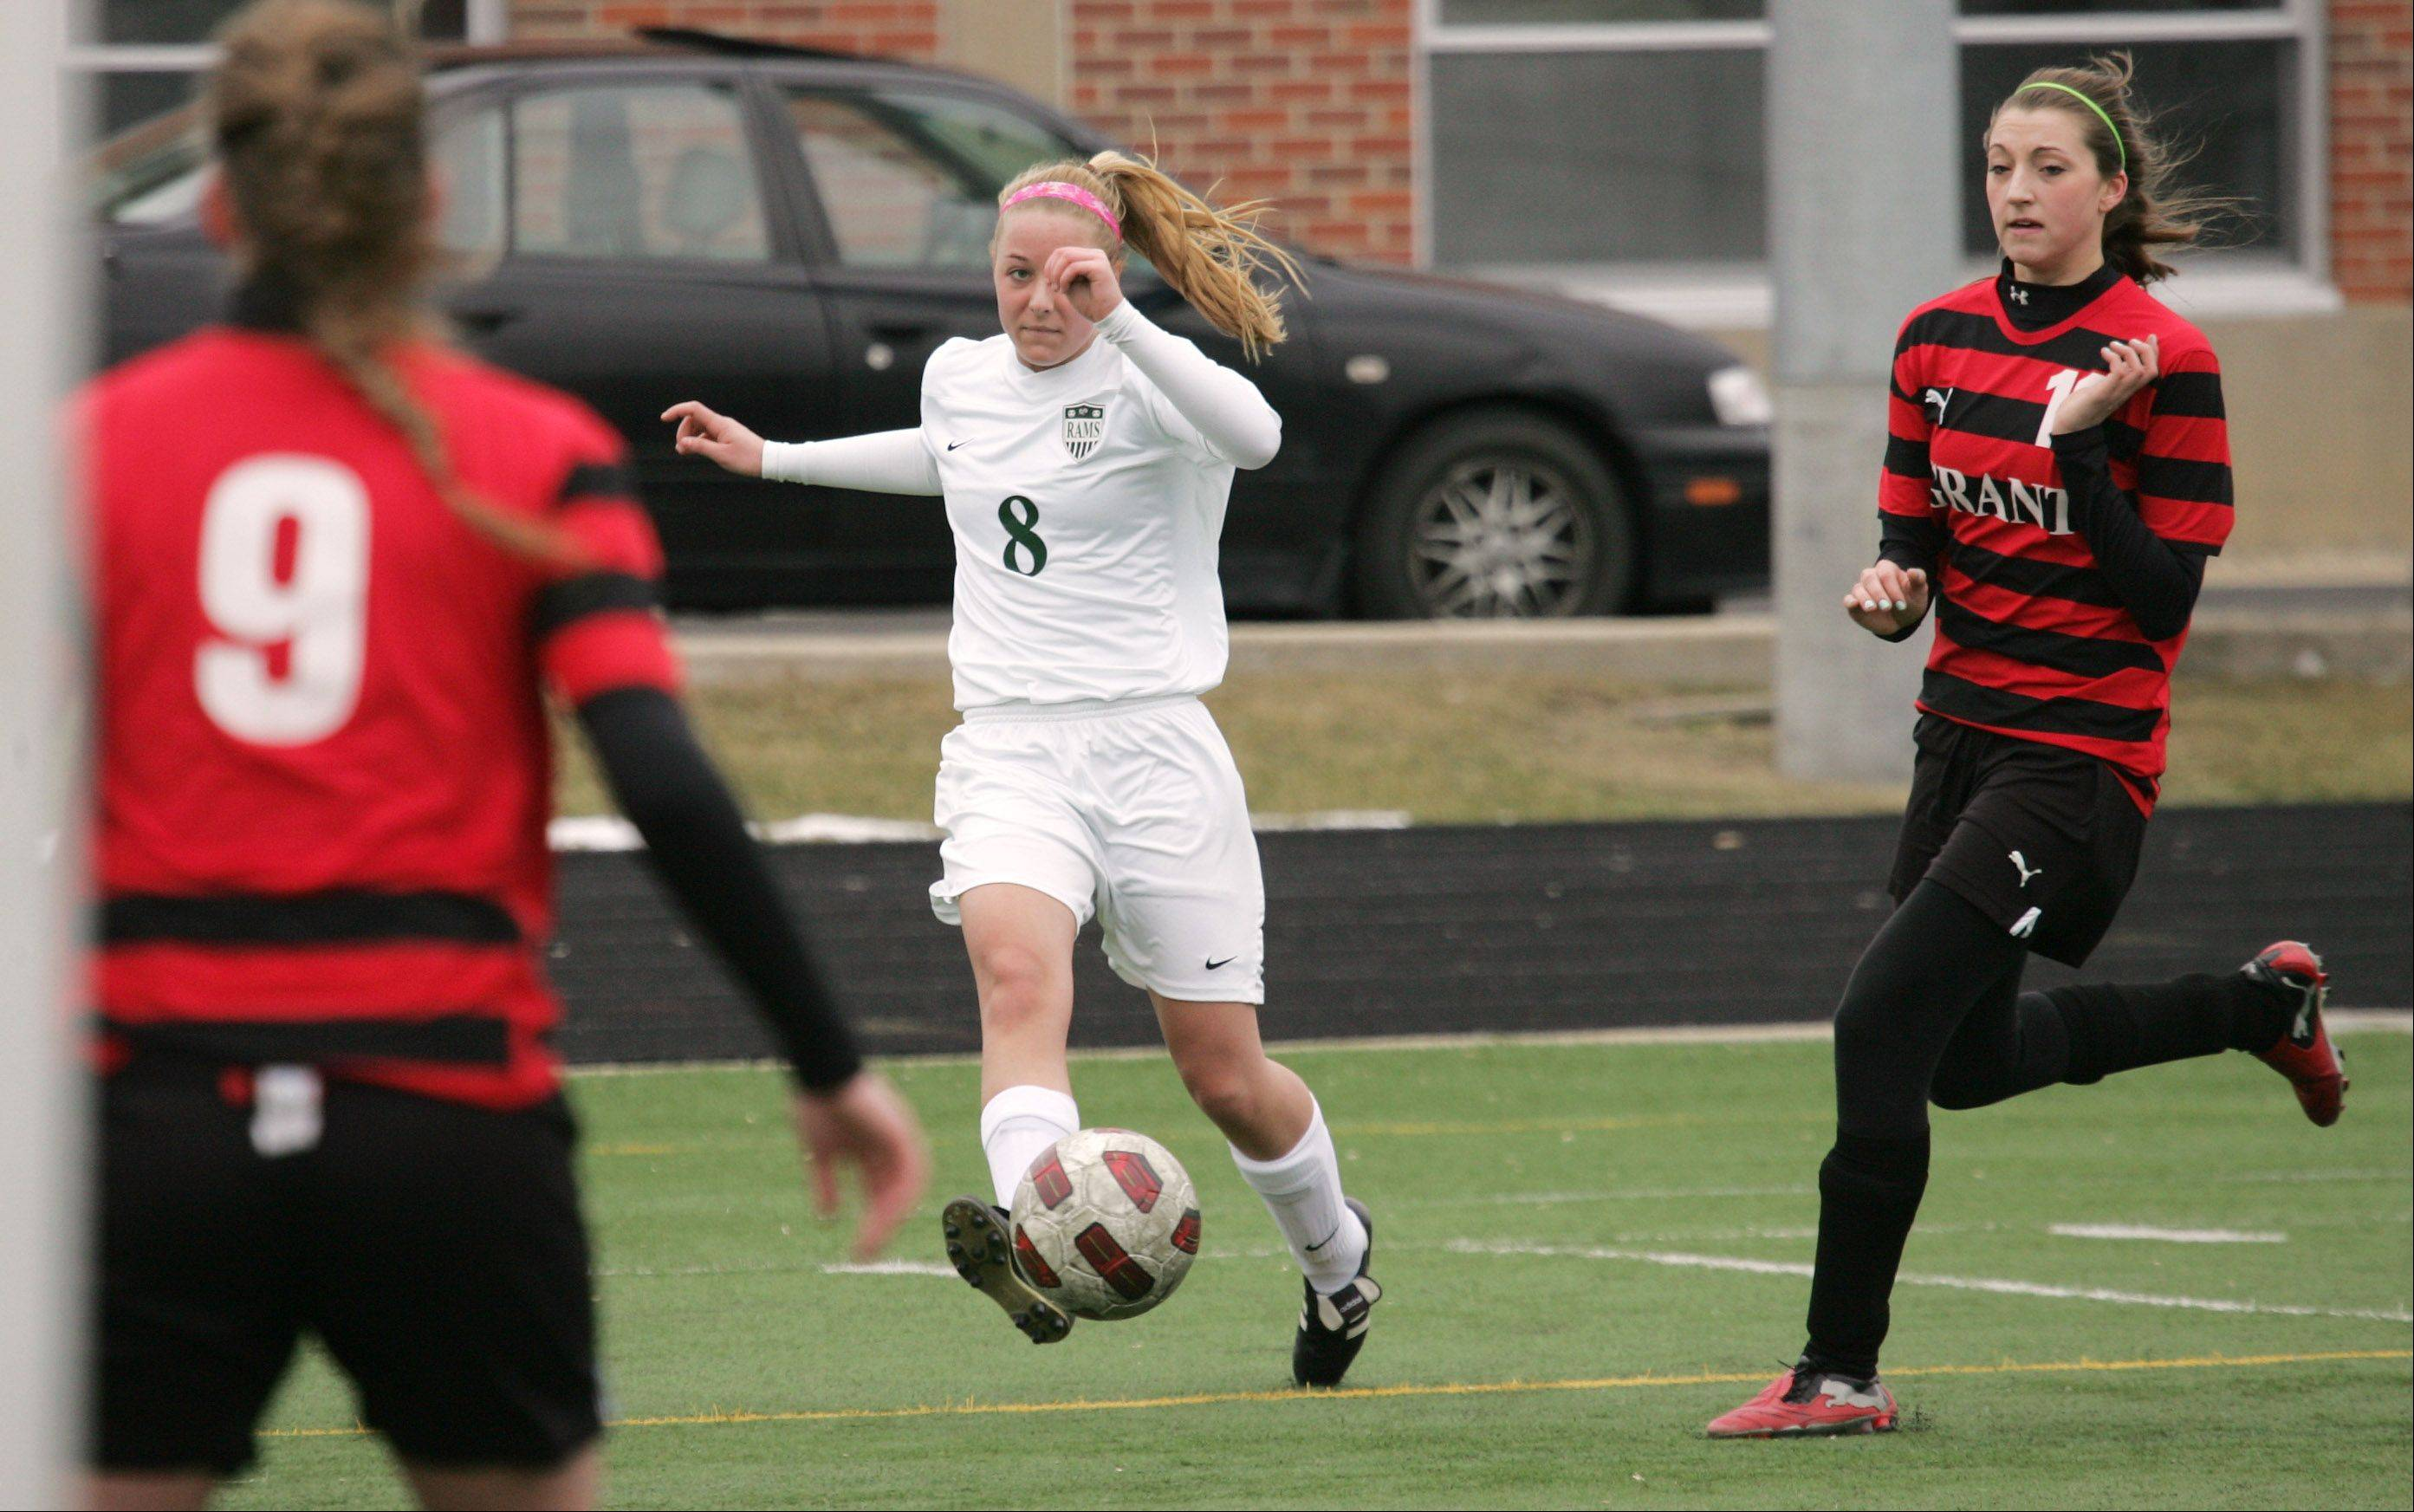 Grayslake Central midfielder Jennifer Biondo takes a shot on goal in the second half against Grant on Wednesday at Grayslake Central.